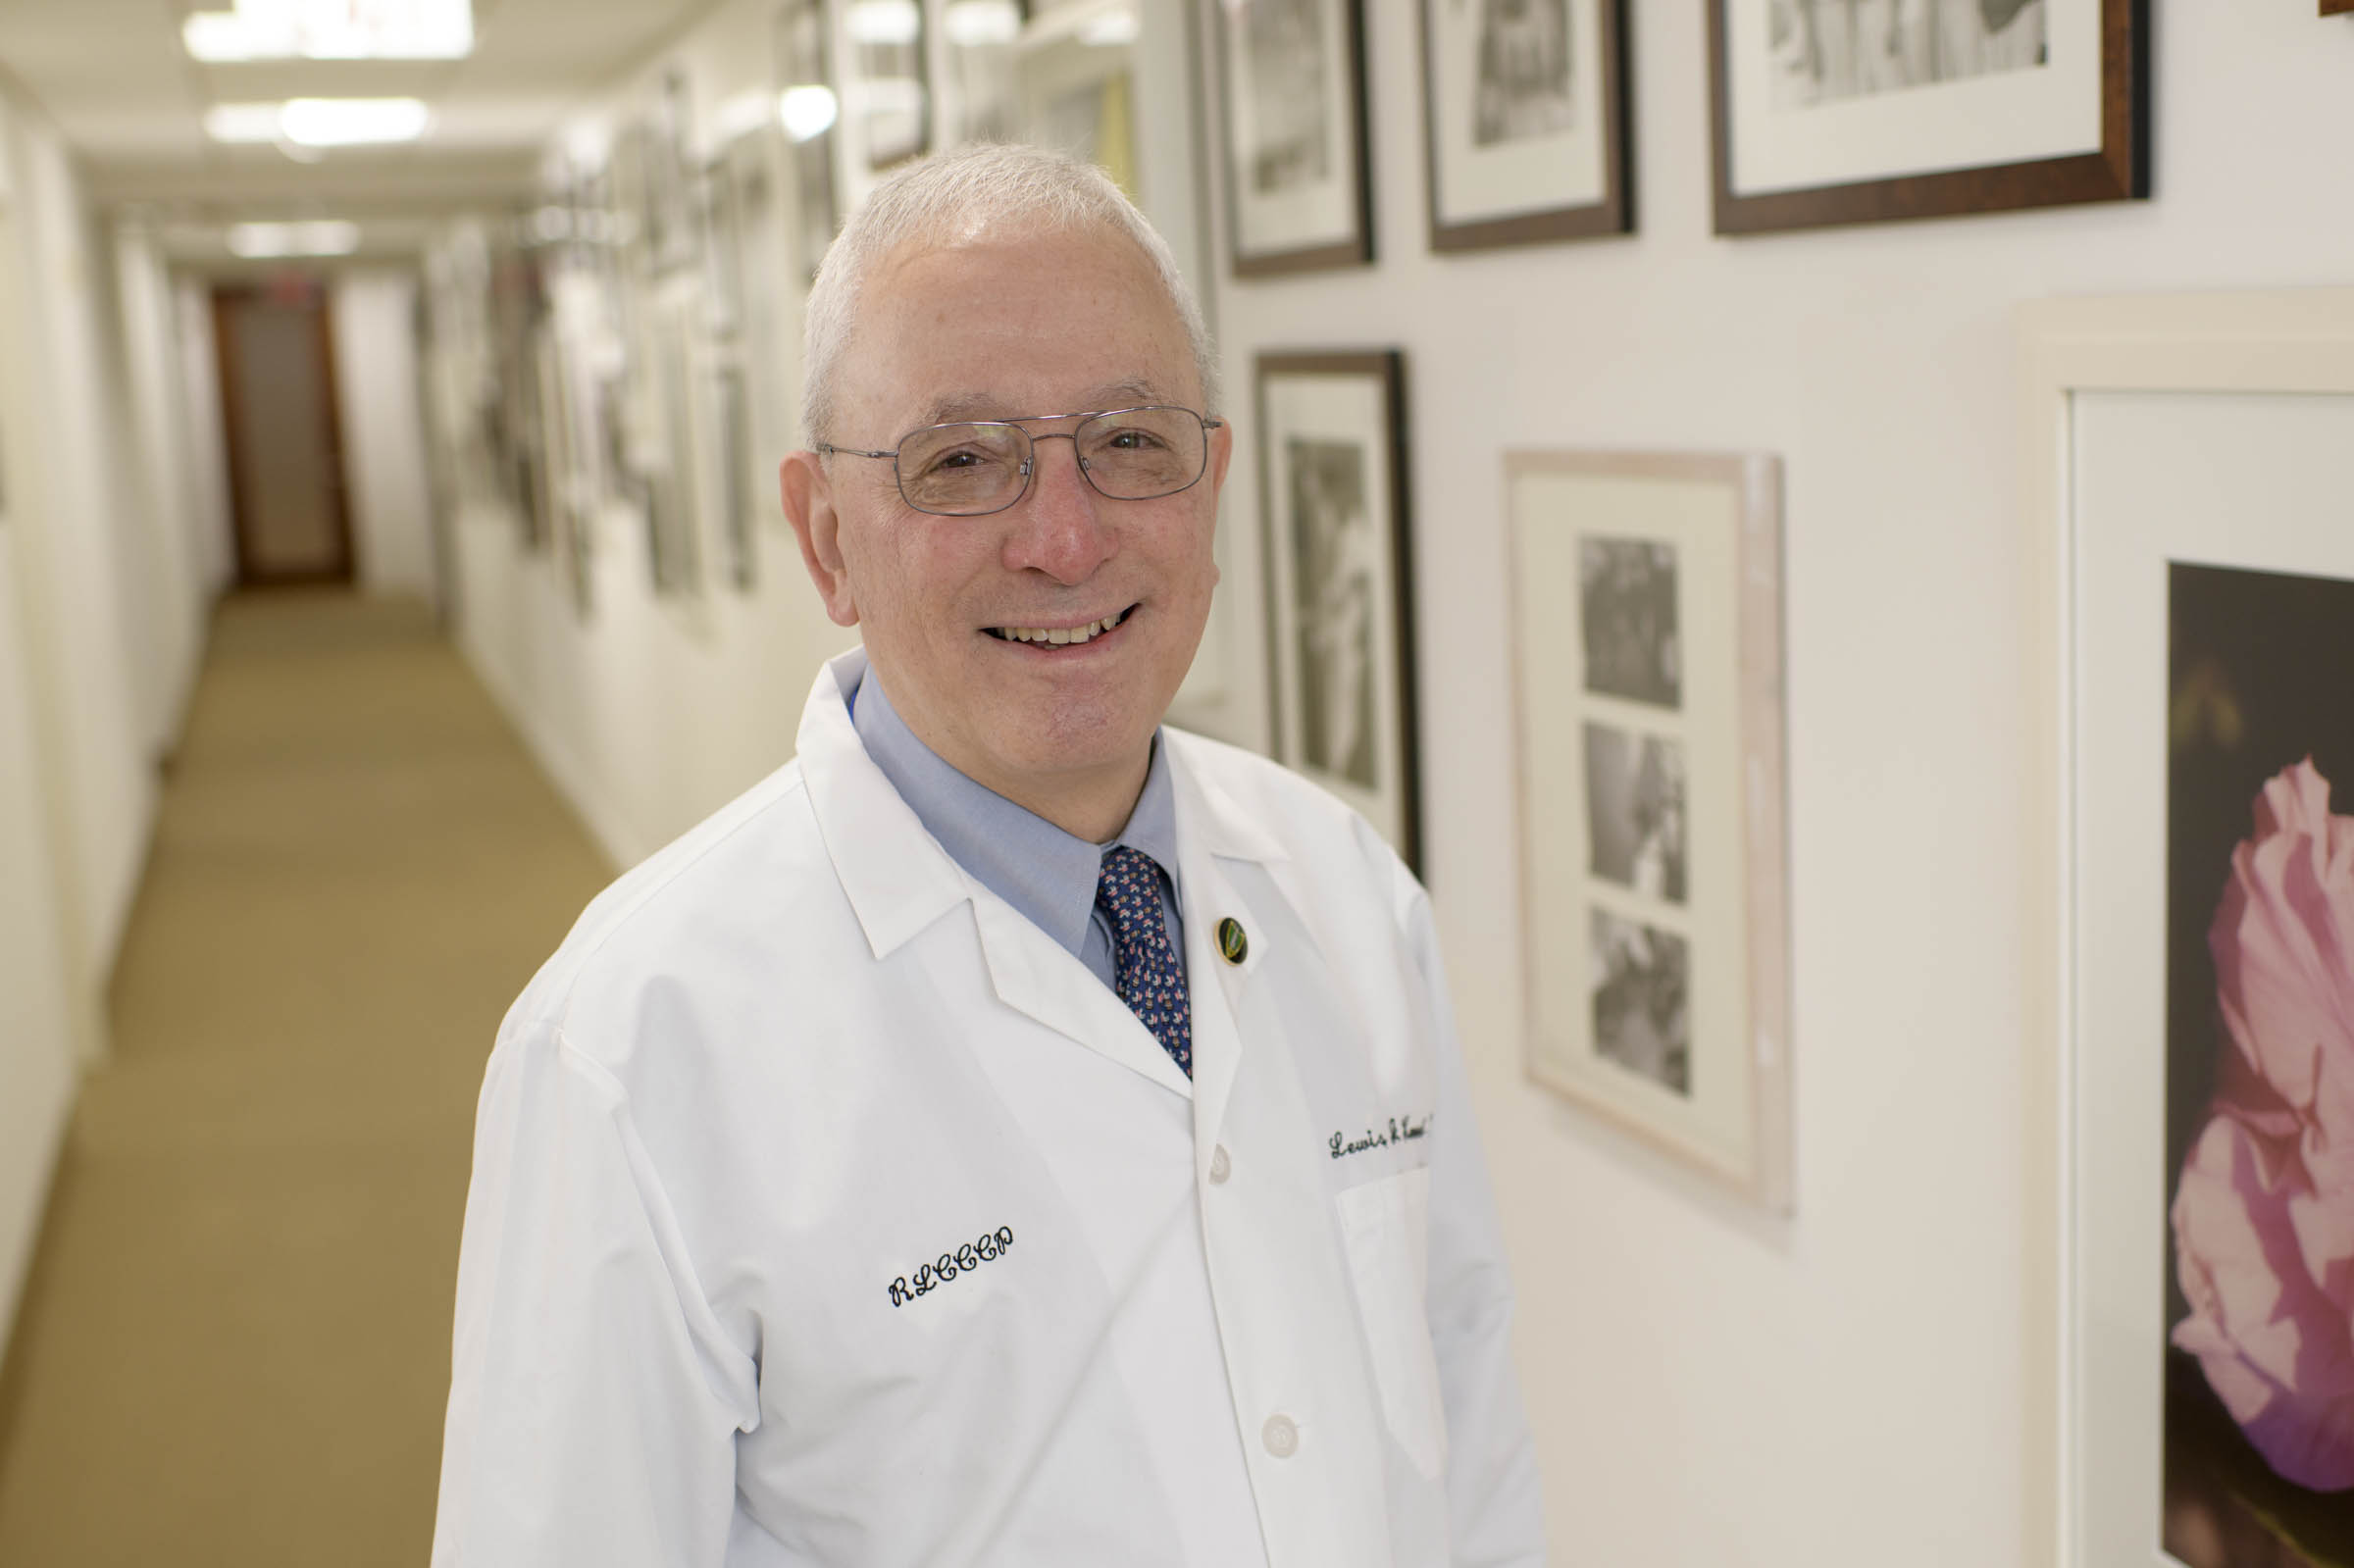 Dr. Lewis Kampel Medical Oncologist, Memorial Sloan Kettering Cancer Center